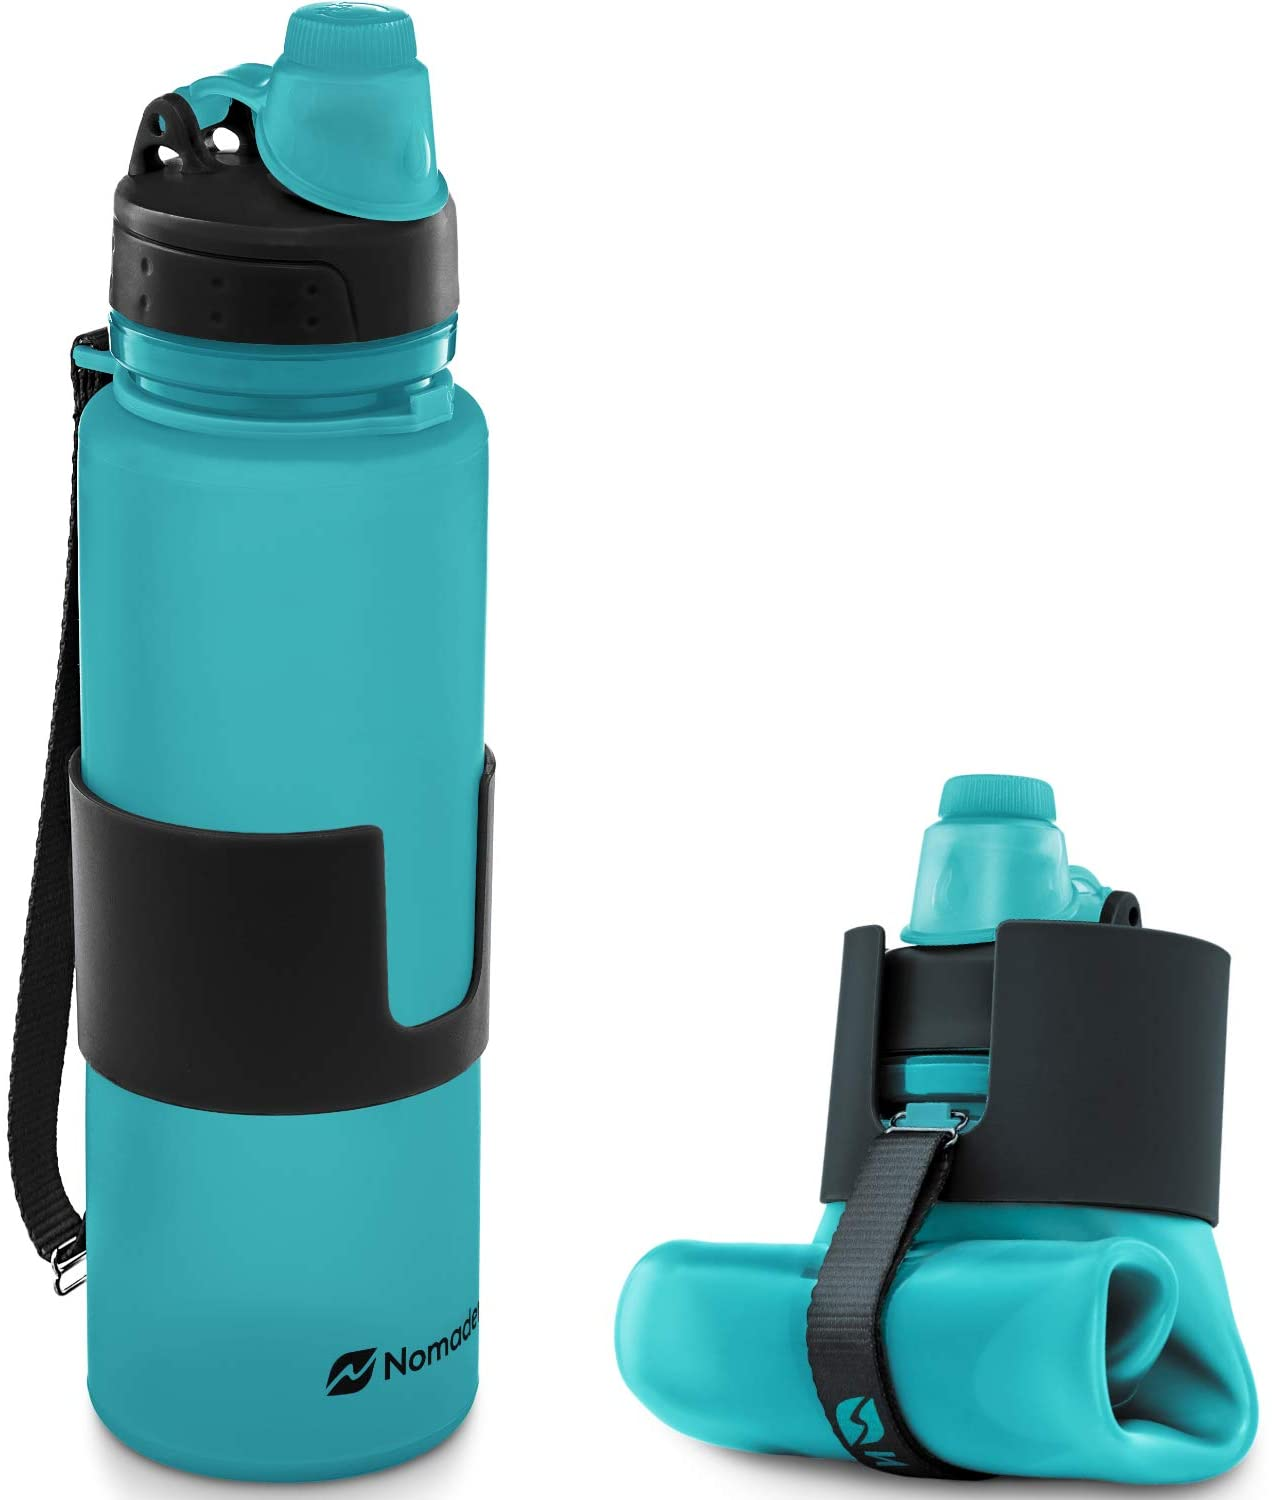 Nomader Collapsible Water Bottle - Leak Proof Twist Cap - BPA Free, 22 oz